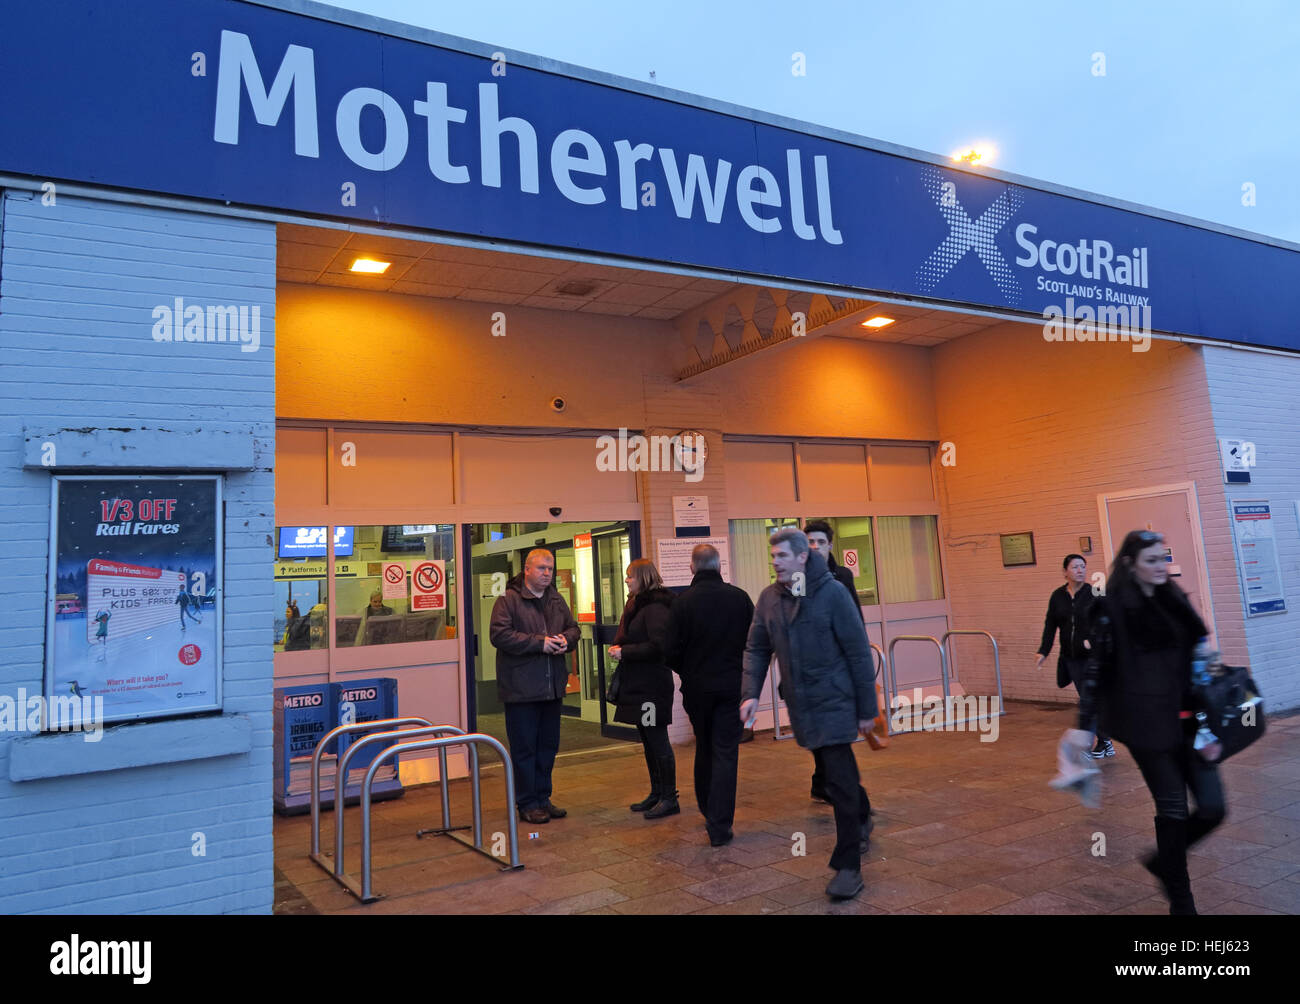 ScotRail railway station Motherwell,North Lanarkshire,Scotland,UK at dusk - Stock Image